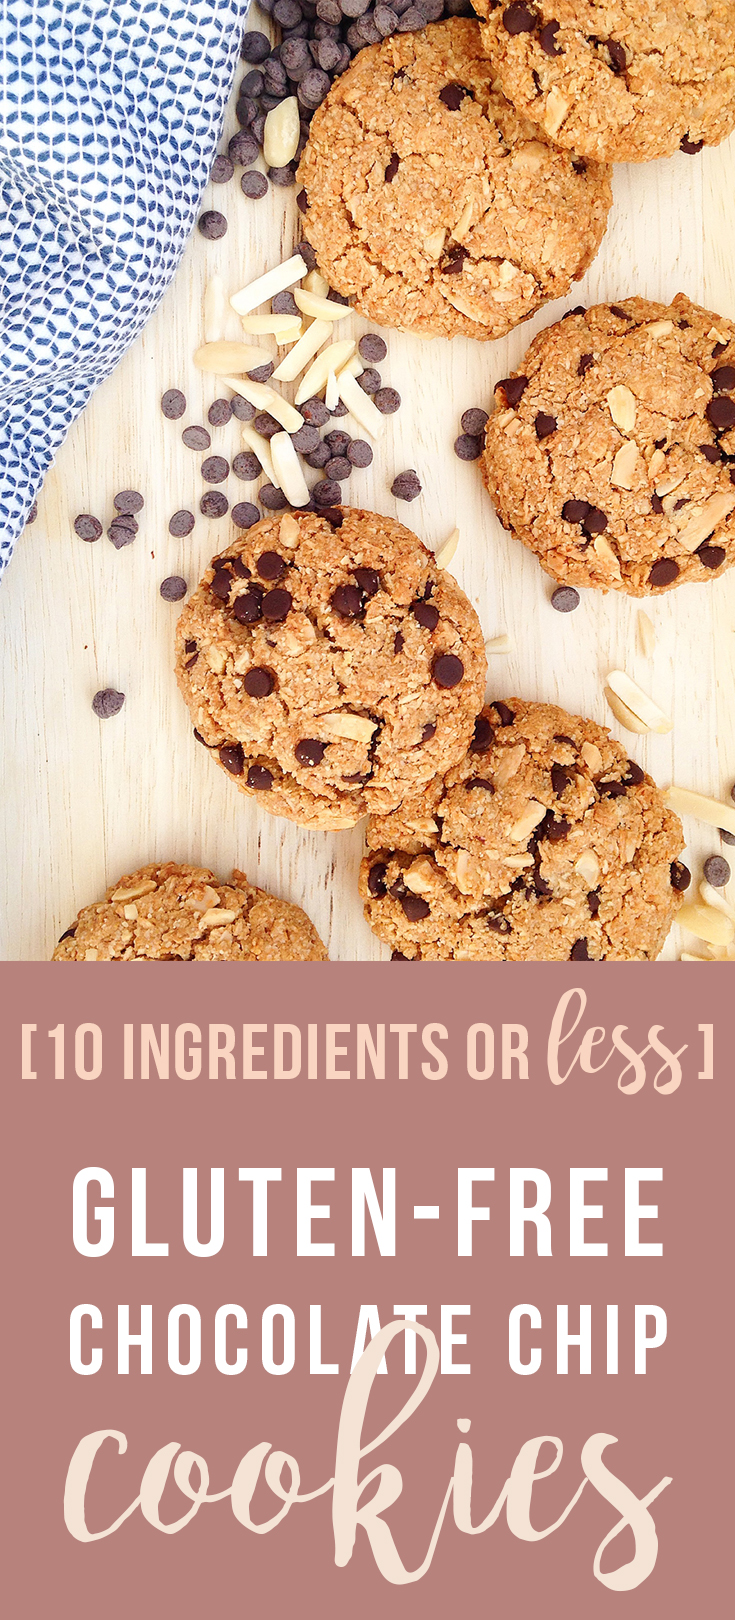 10 Ingredients or Less: these easy Gluten-Free Chocolate Chip Cookies are simple and delicious with less sugar, and no gluten, preservatives, or artificial flavors. Click to read the recipe or pin to save for later! | Fresh Planet Flavor #glutenfree #healthy #cookies #10ingredientsorless